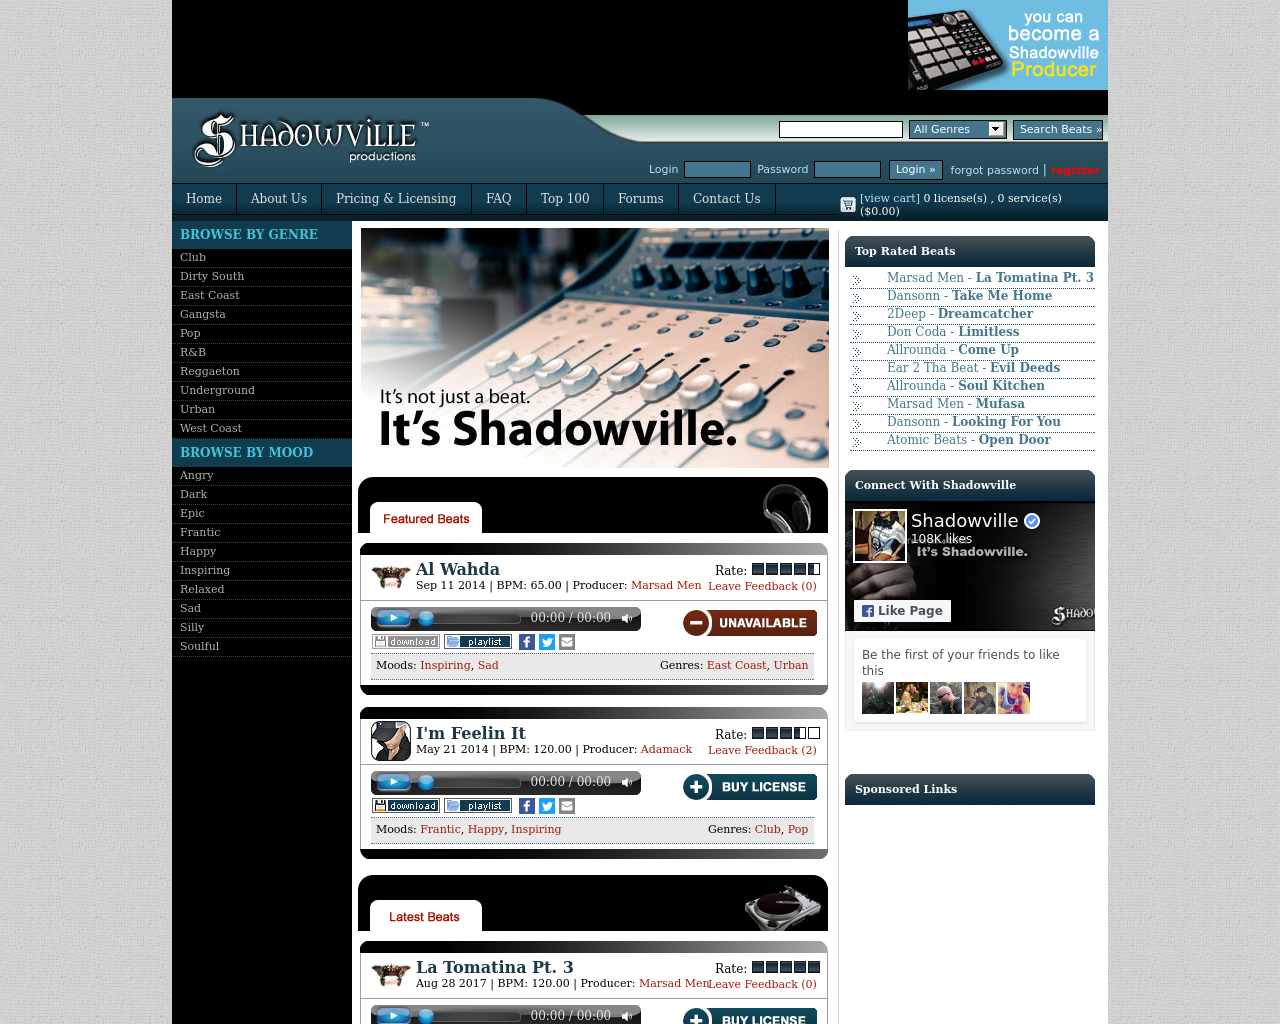 SHAdOWViLLE-Advertising-Reviews-Pricing